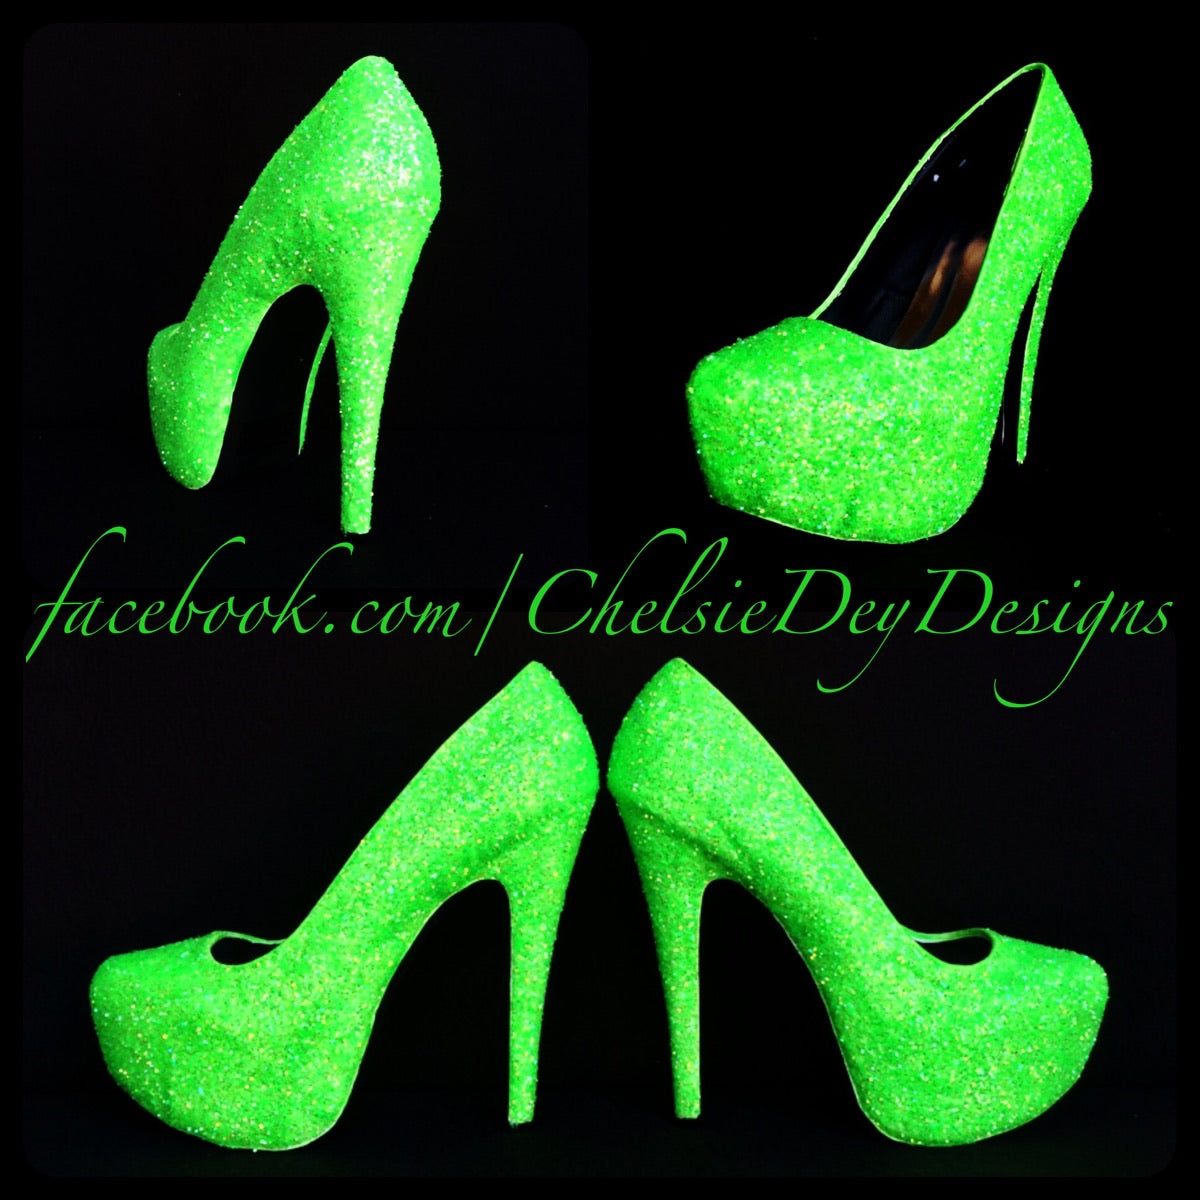 da73e6e04ff Sparkly Lime Neon Green High Heels 5 Inch Model by Chelsie Dey Designs ...